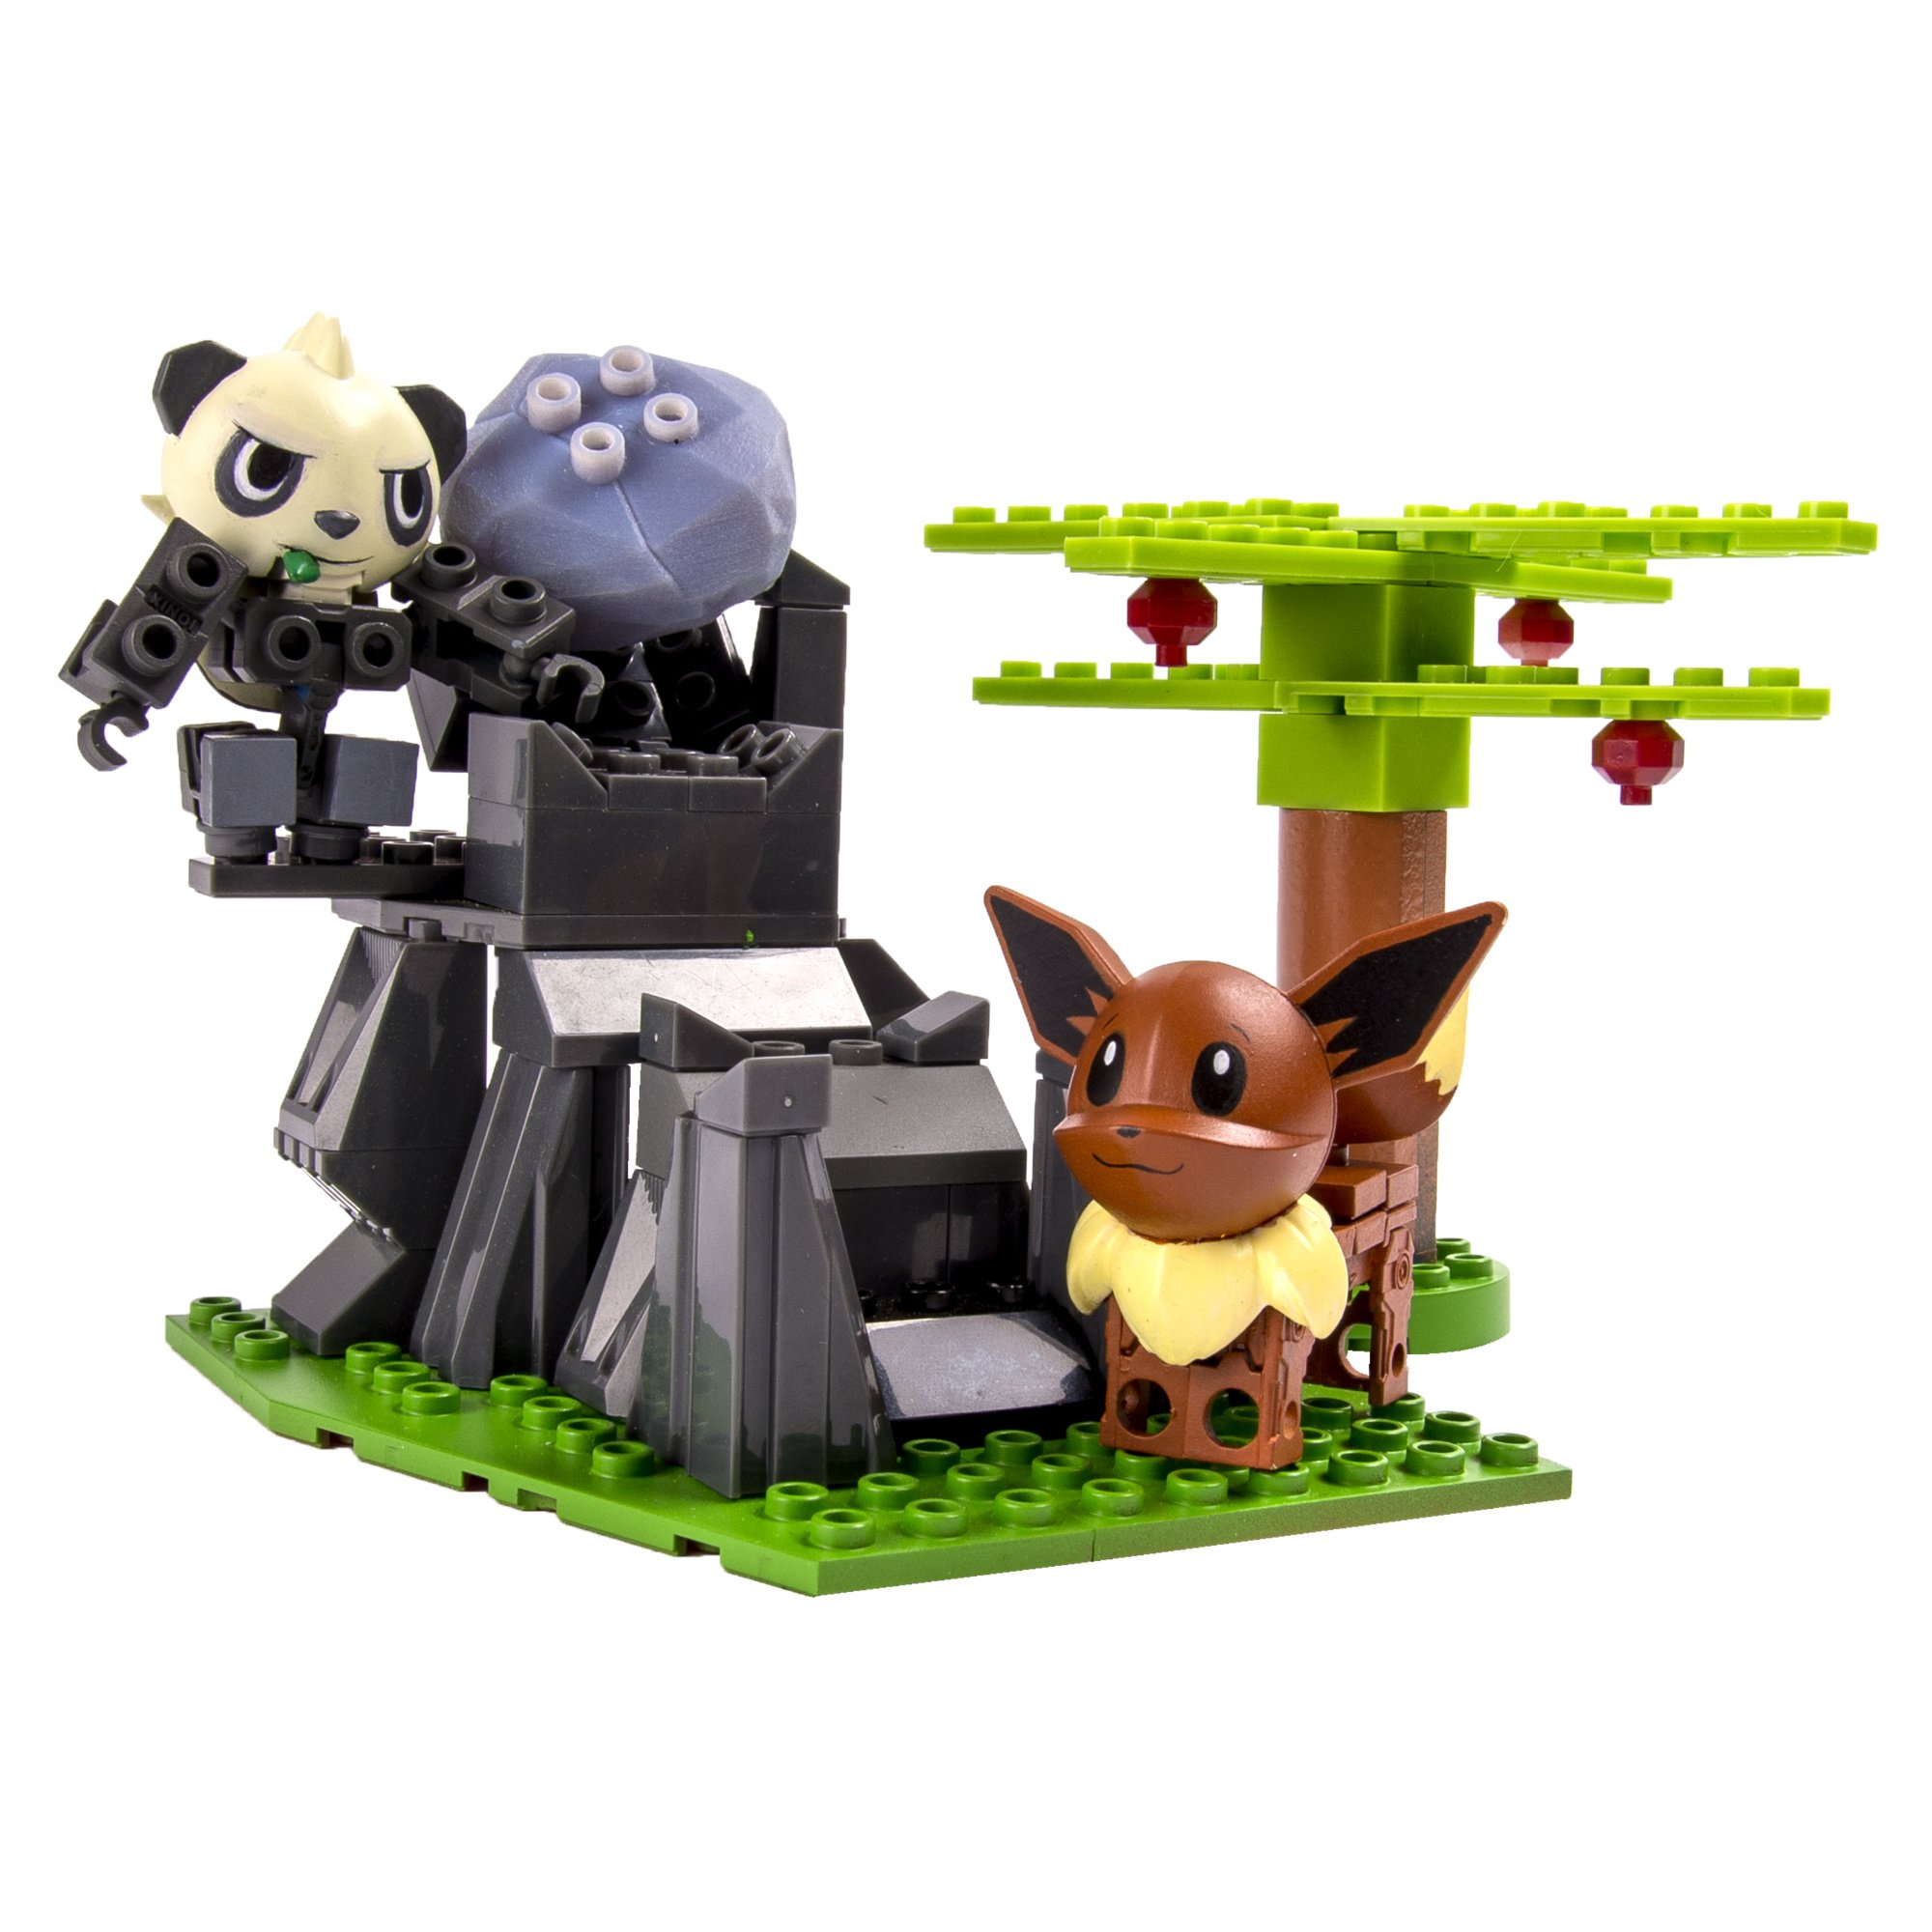 Ionix Pokemon - Pancham Vs Eevee Playset 30701 6